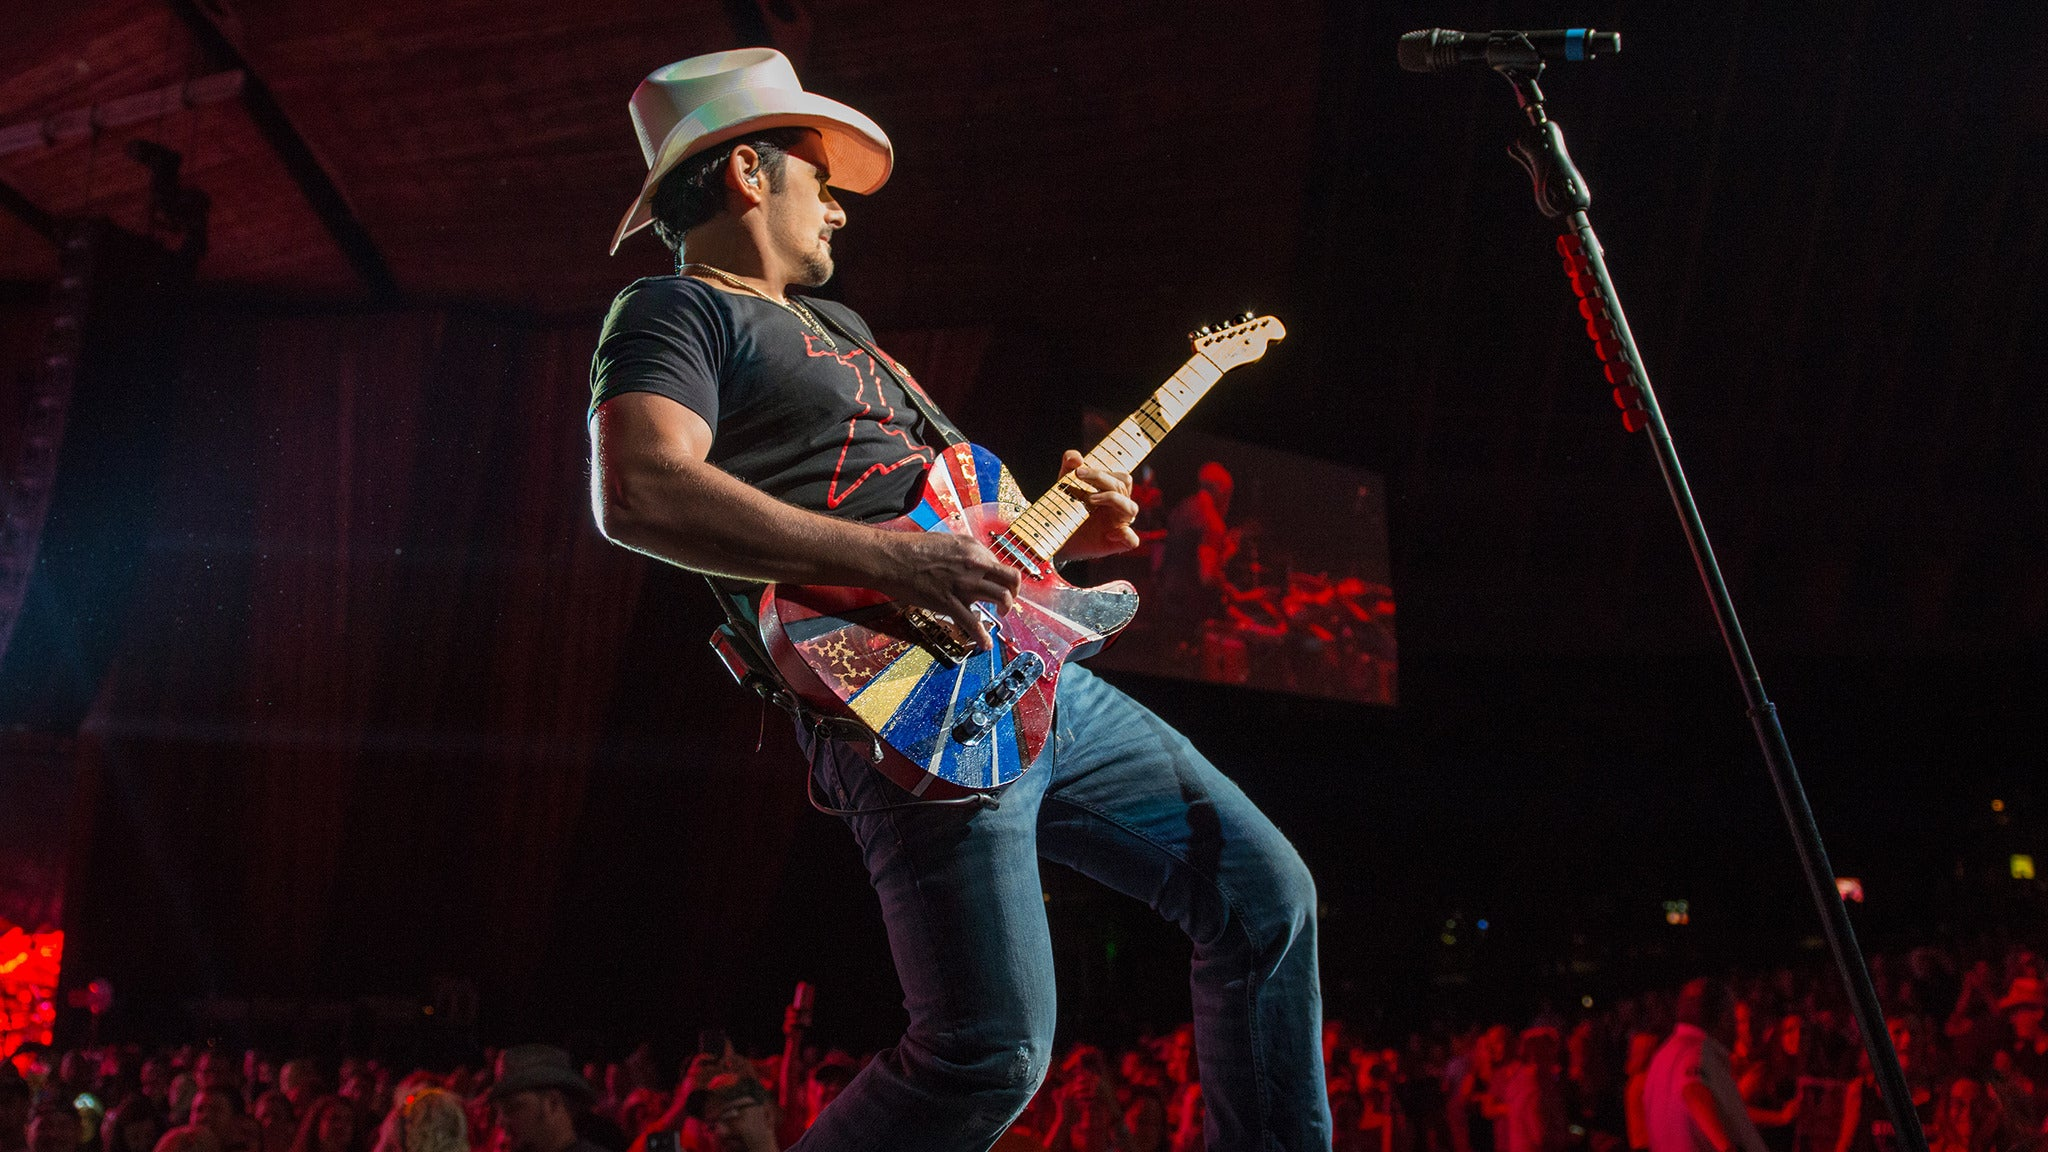 KSON Presents Brad Paisley Tour 2018